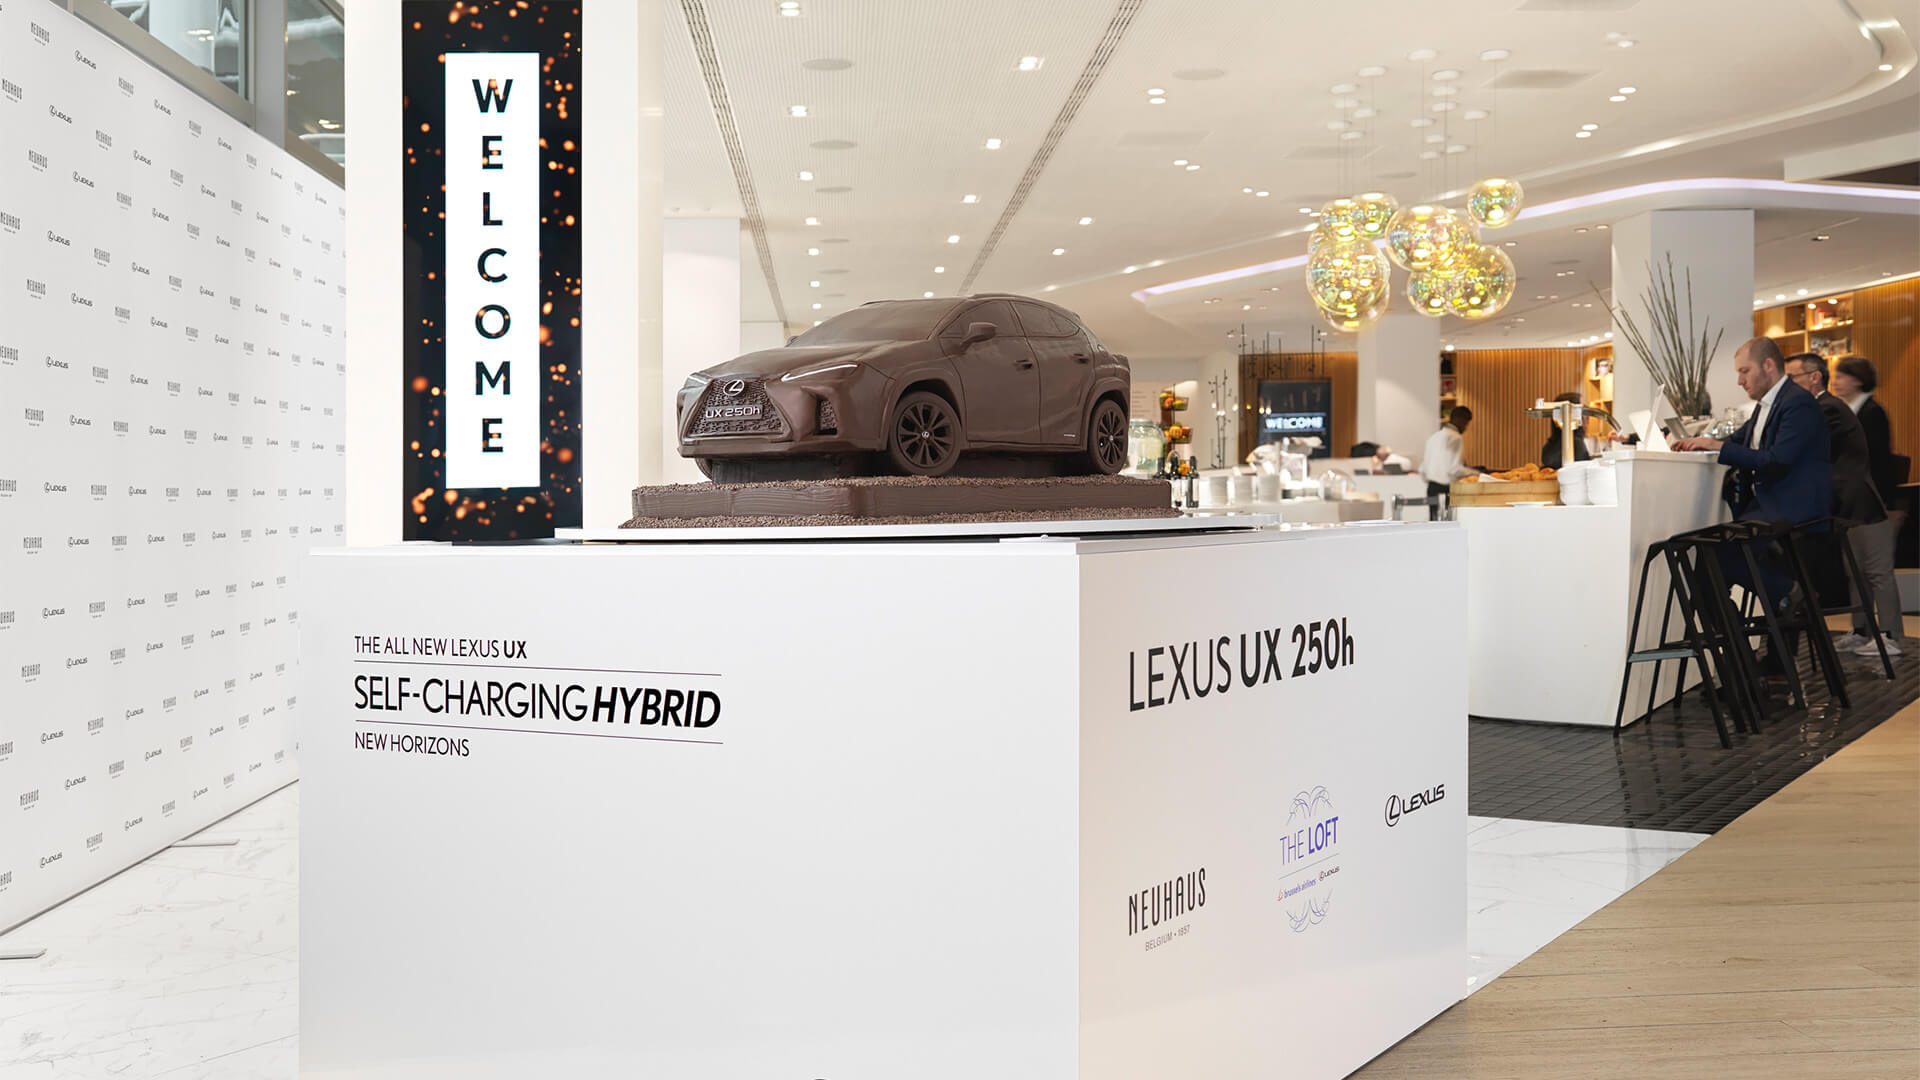 2019 lexus lounge UX Chocolate Car 1920x1080 03